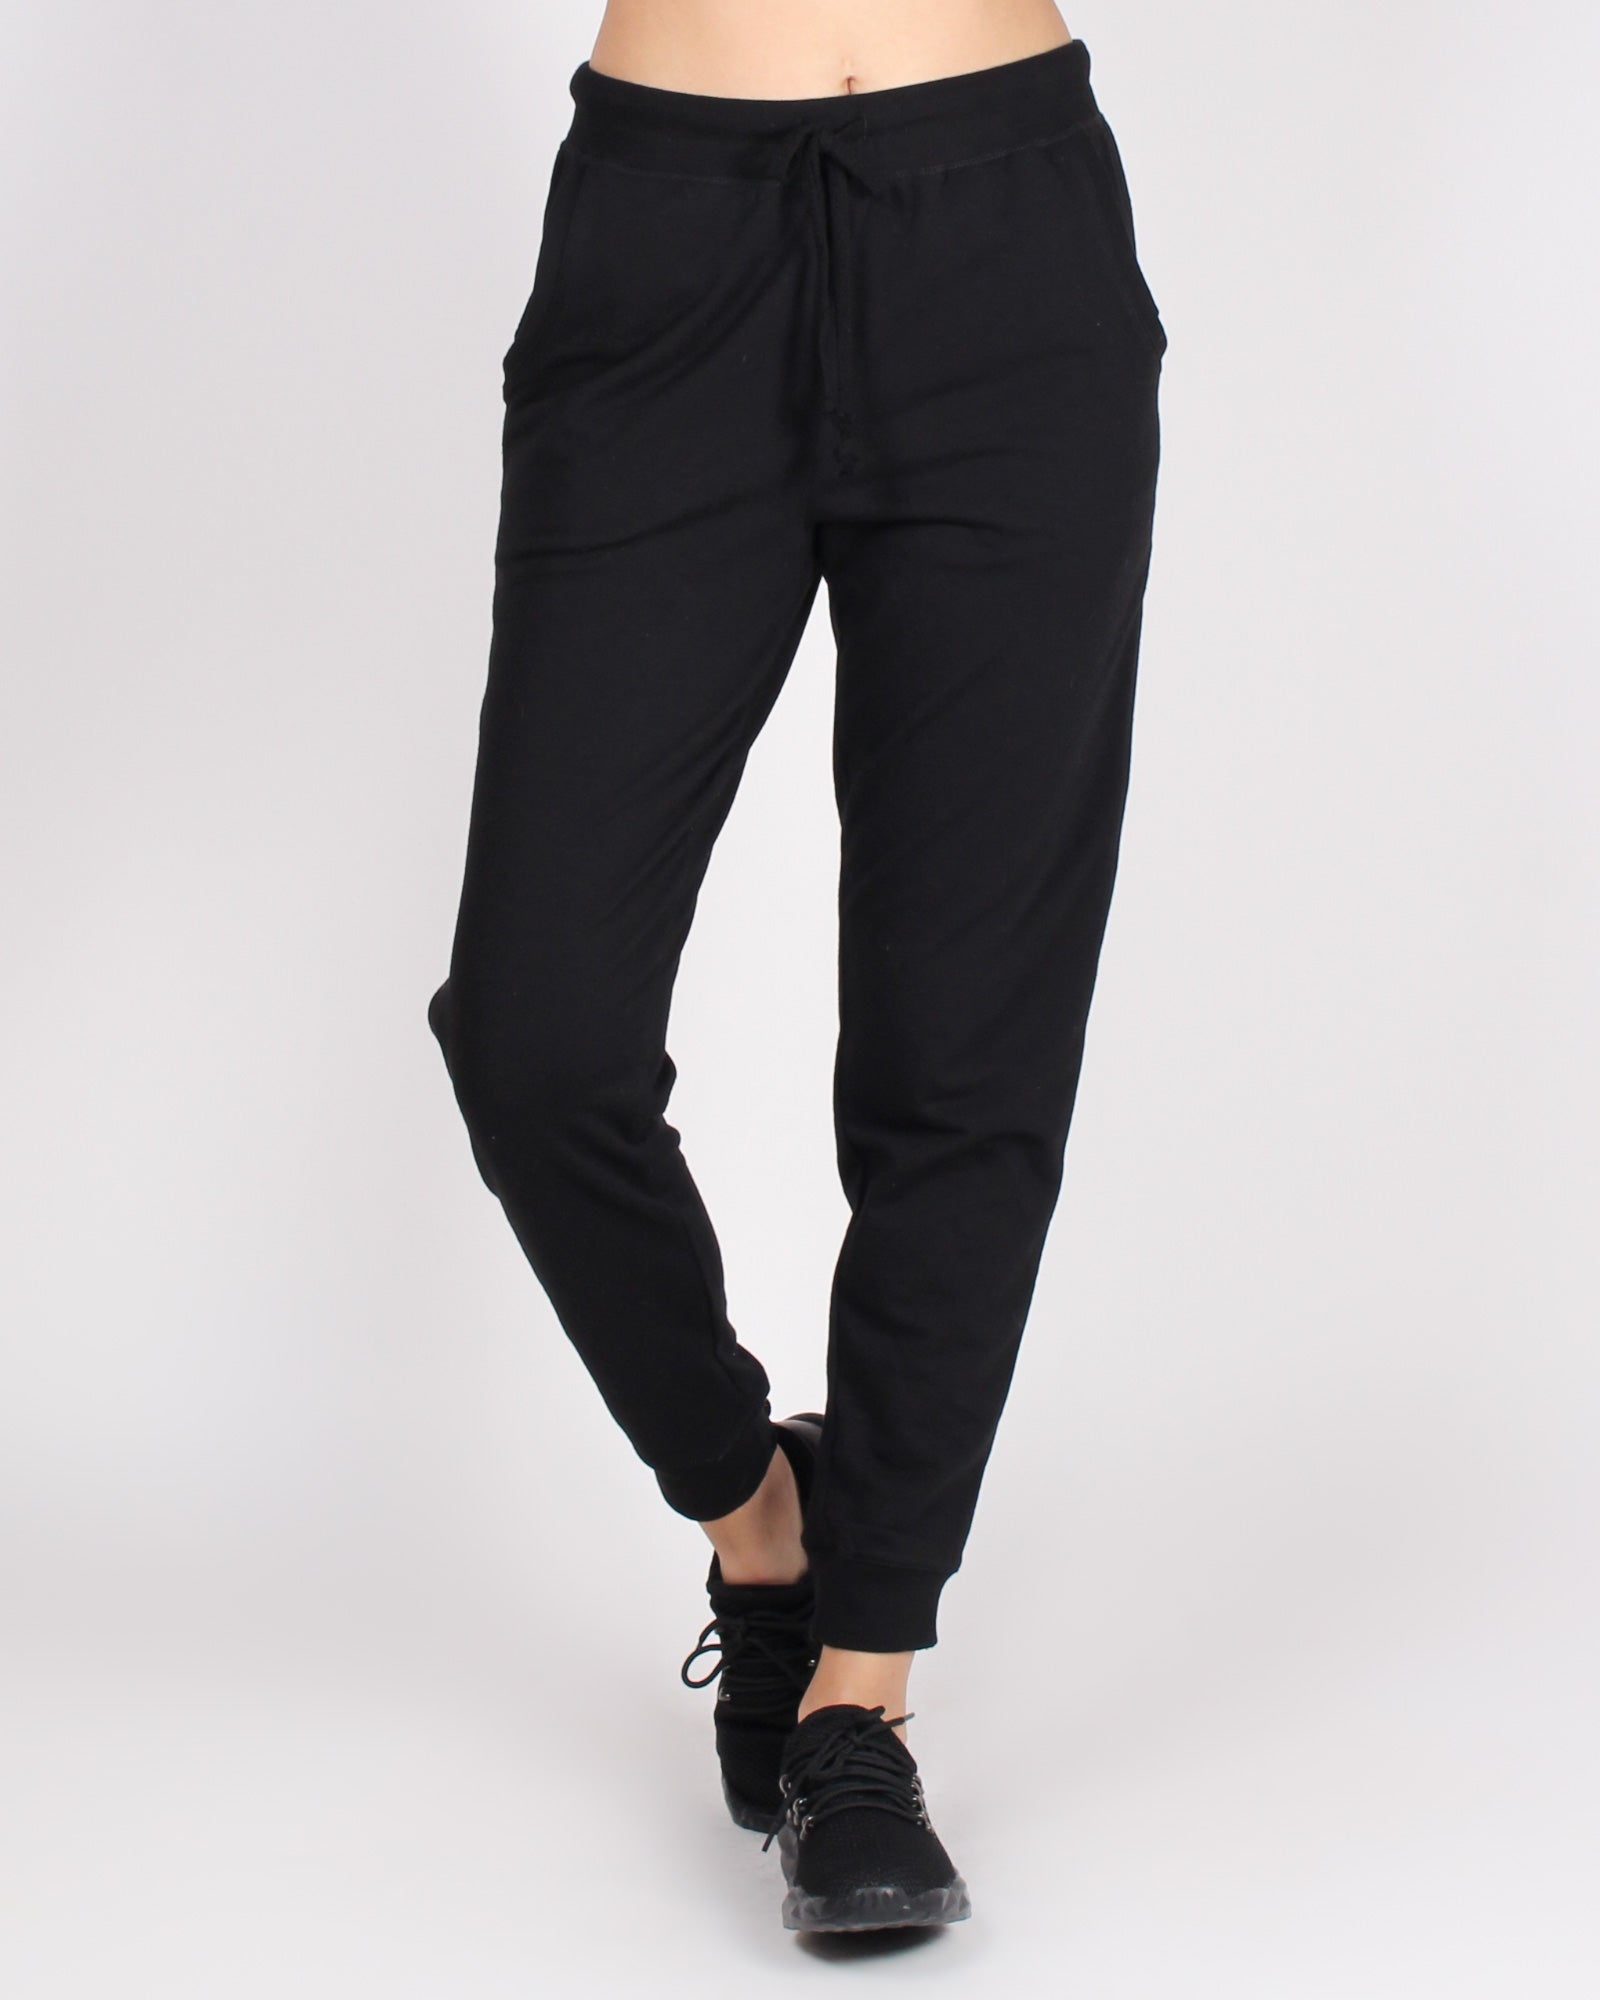 Bombastic Love Jogger Pants (Black)